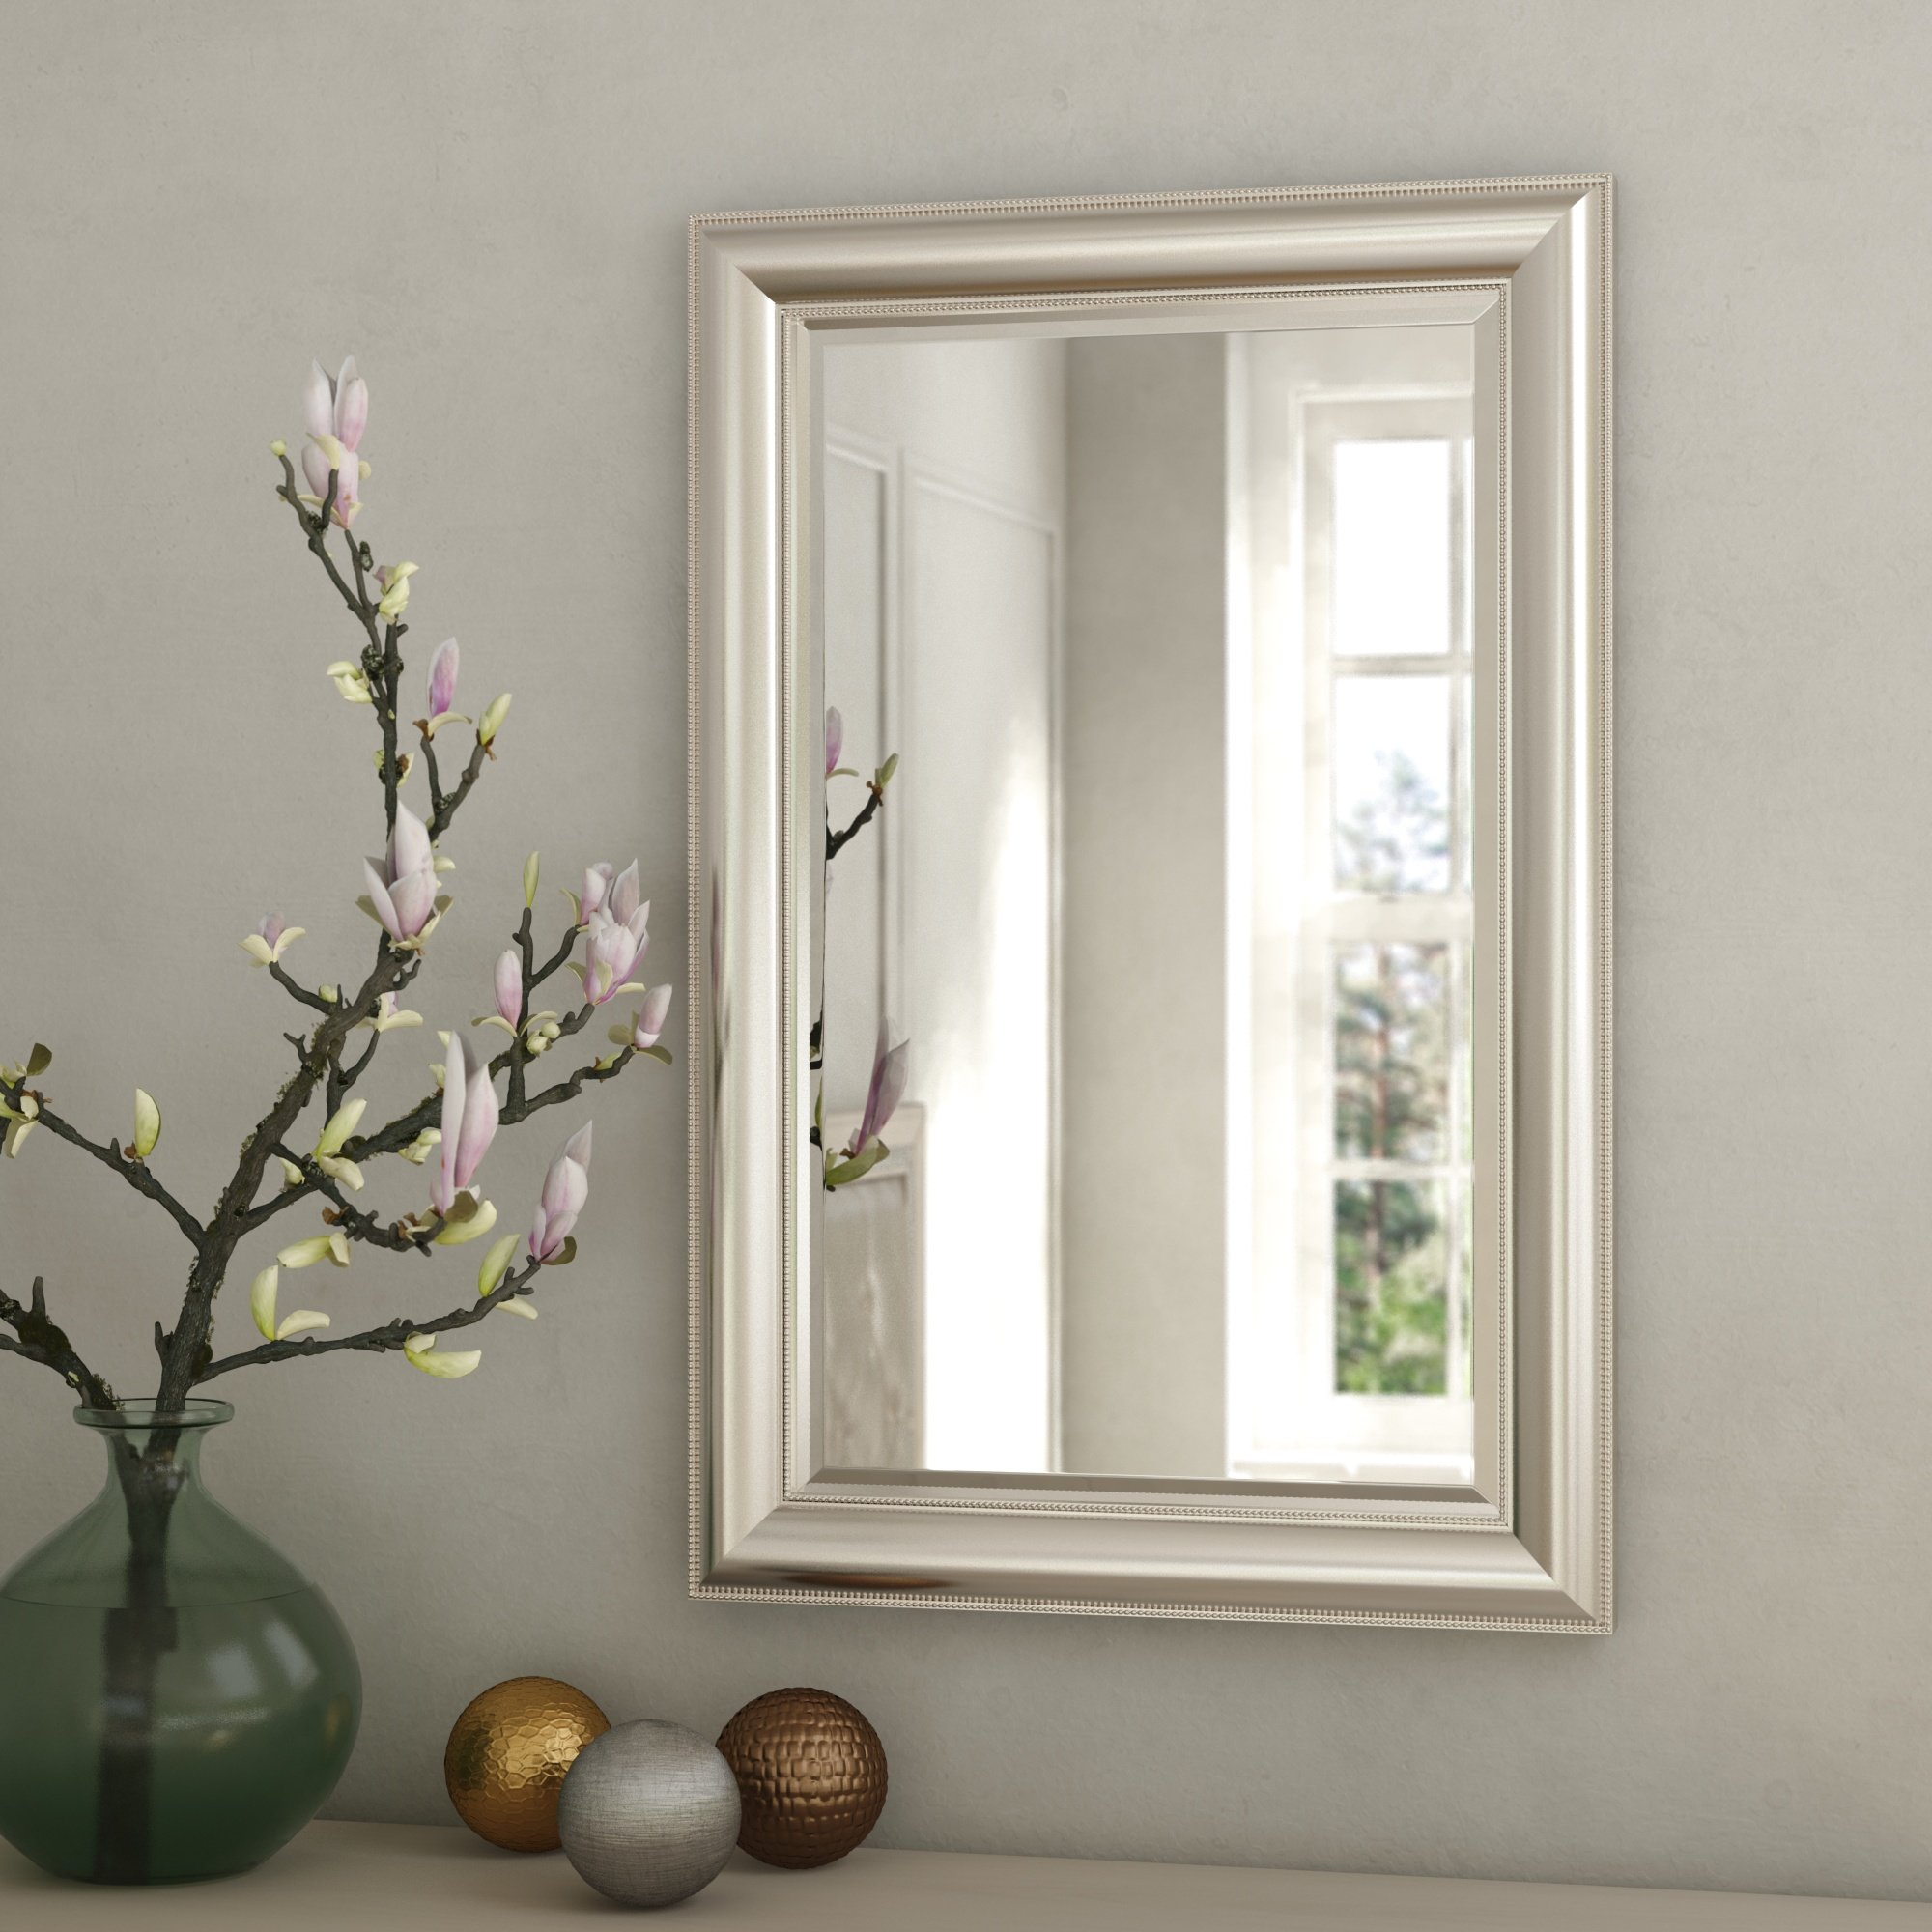 Rosdorf Park Beaded Accent Mirror & Reviews | Wayfair For Lake Park Beveled Beaded Accent Wall Mirrors (View 15 of 20)